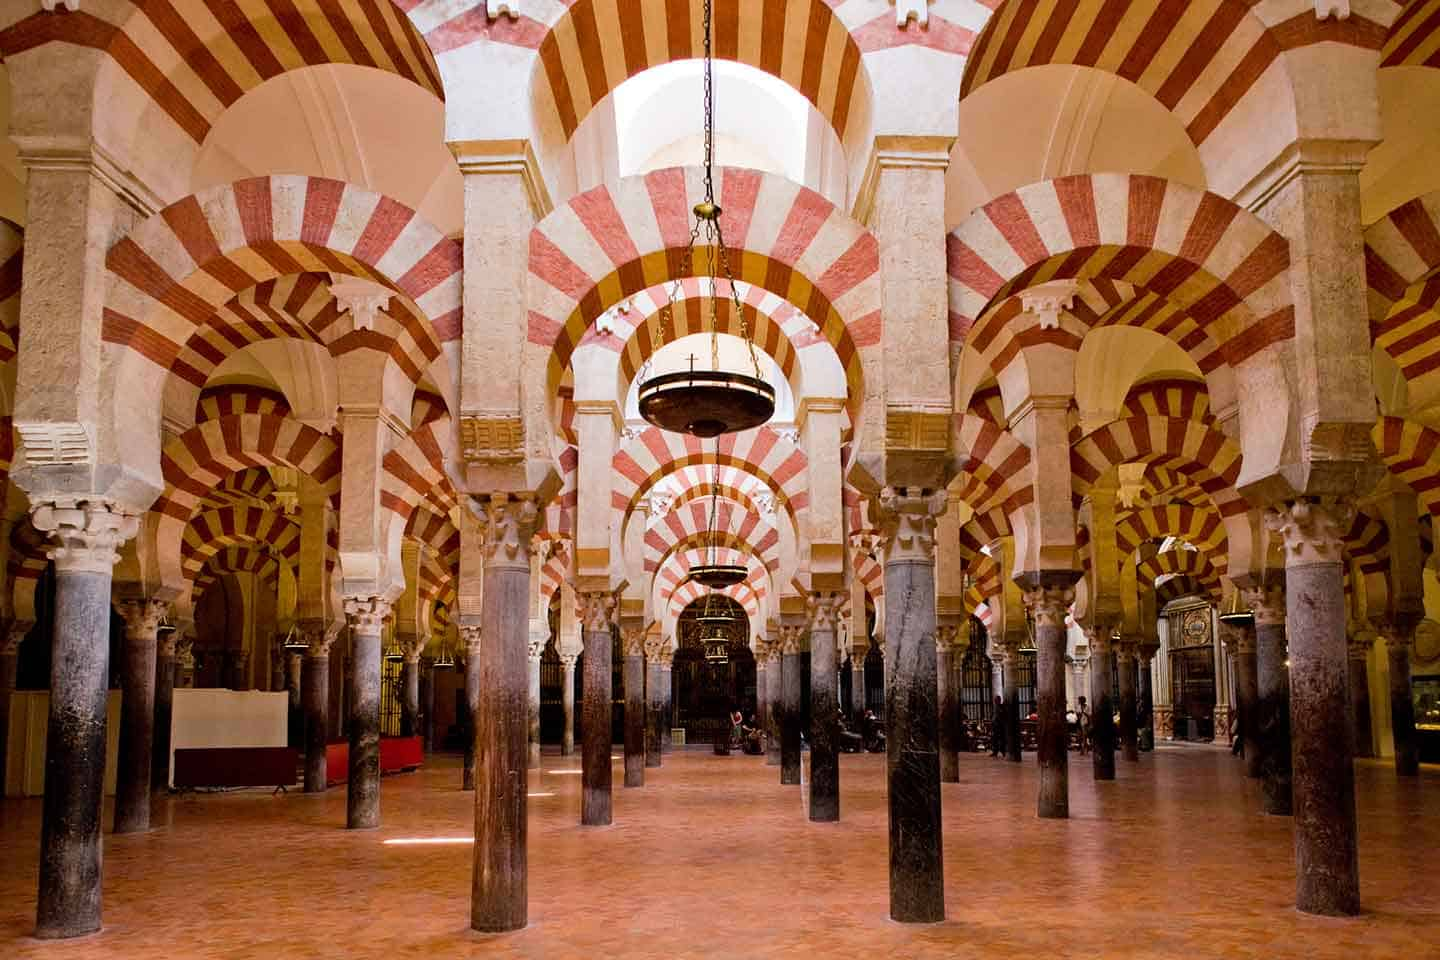 Image of Cordoba things to do the arches of the Mezquita